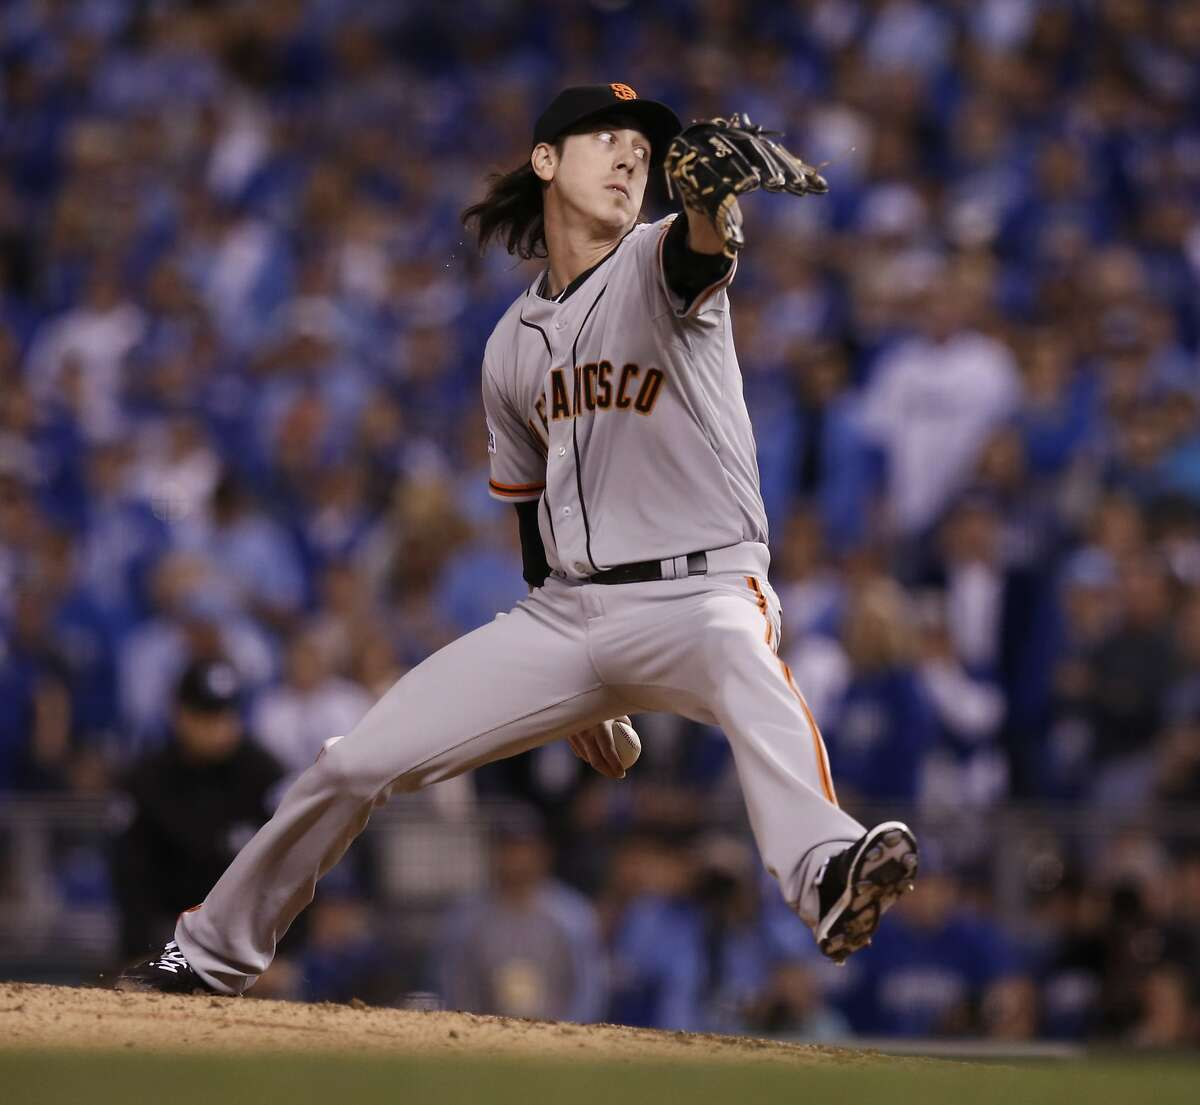 Giants Tim Lincecum pitches in the seventh inning during Game 2 of the World Series at Kauffman Stadium on Wednesday, Oct. 22, 2014 in Kansas City, Mo.